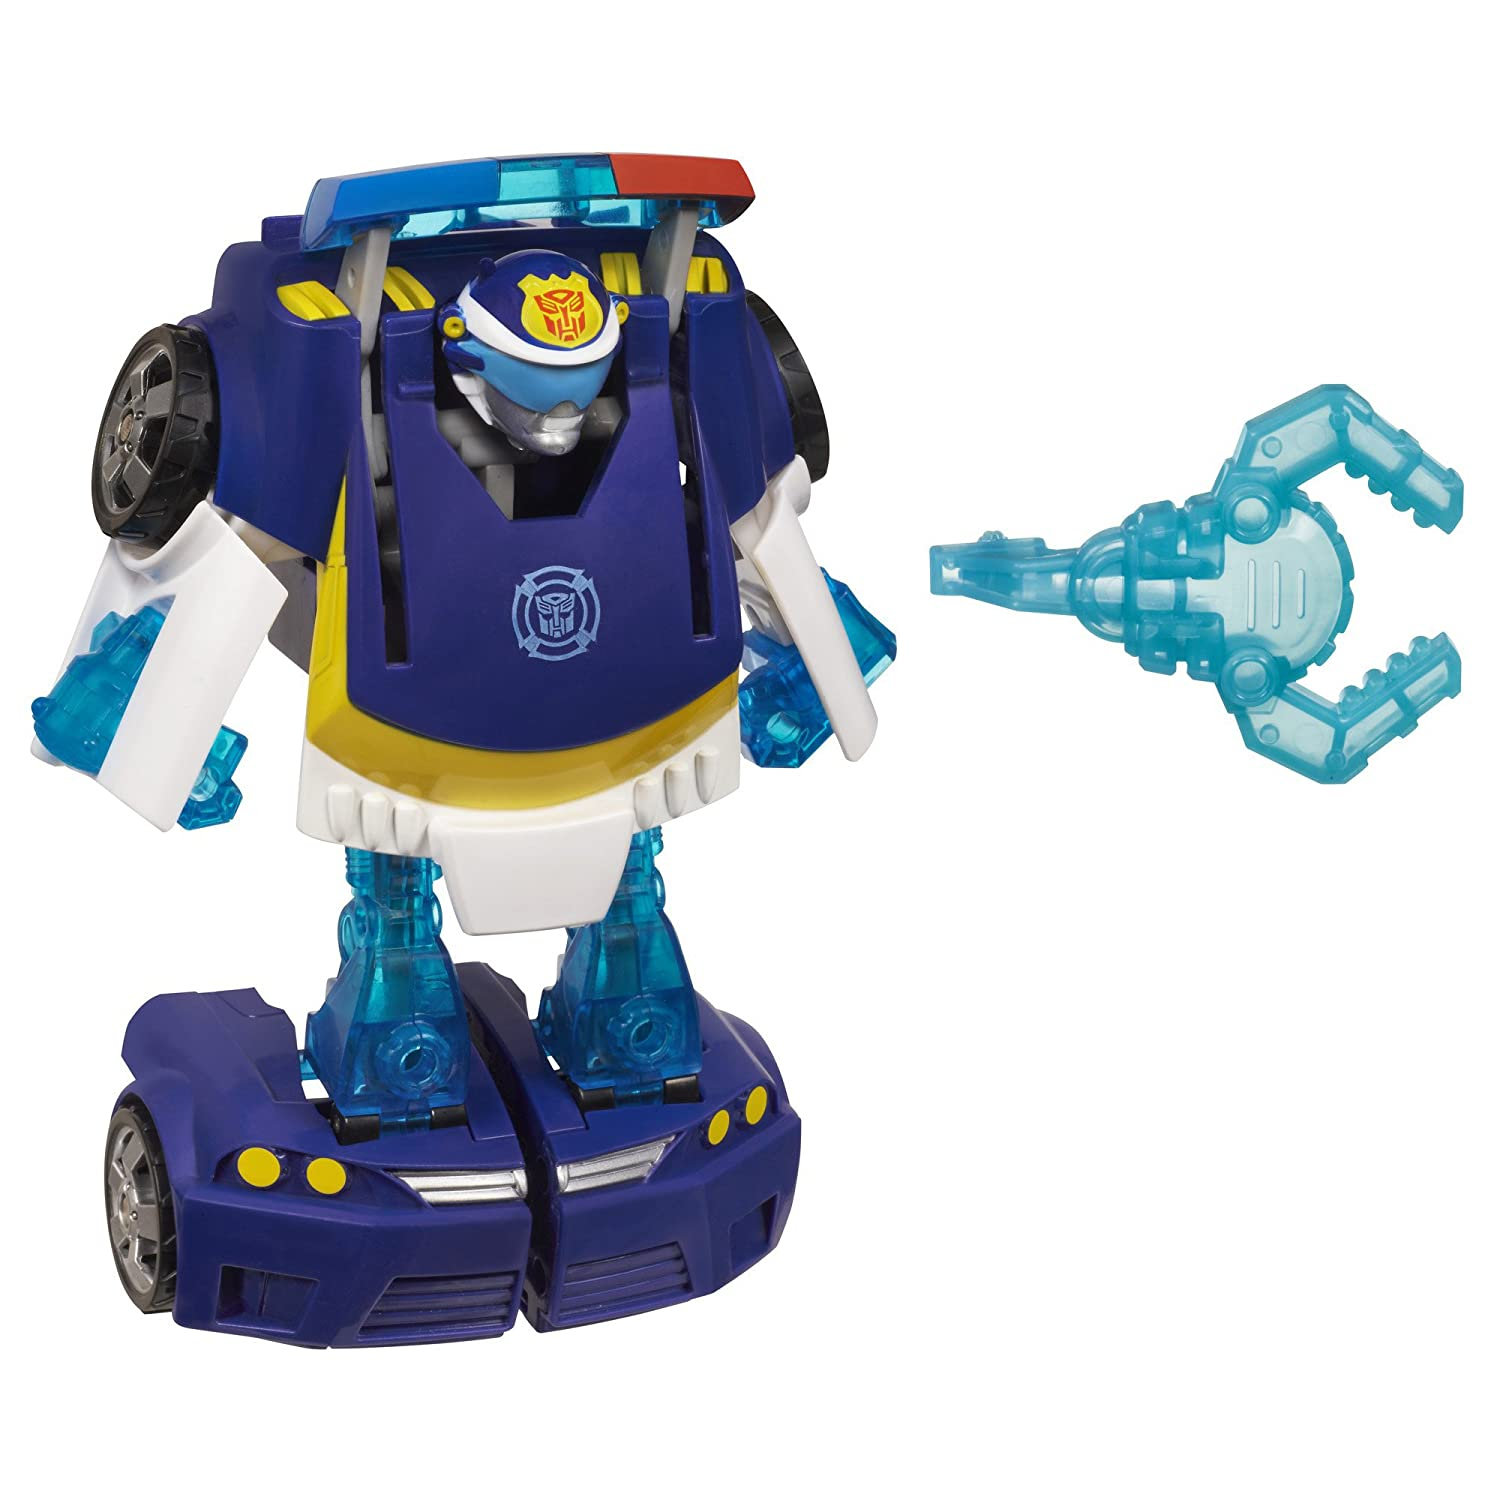 Transformers Playskool Heroes Rescue Bots Energize Chase the Police-Bot Action Figure, Ages 3-7 (Amazon Exclusive) Hasbro - Import A2769F01